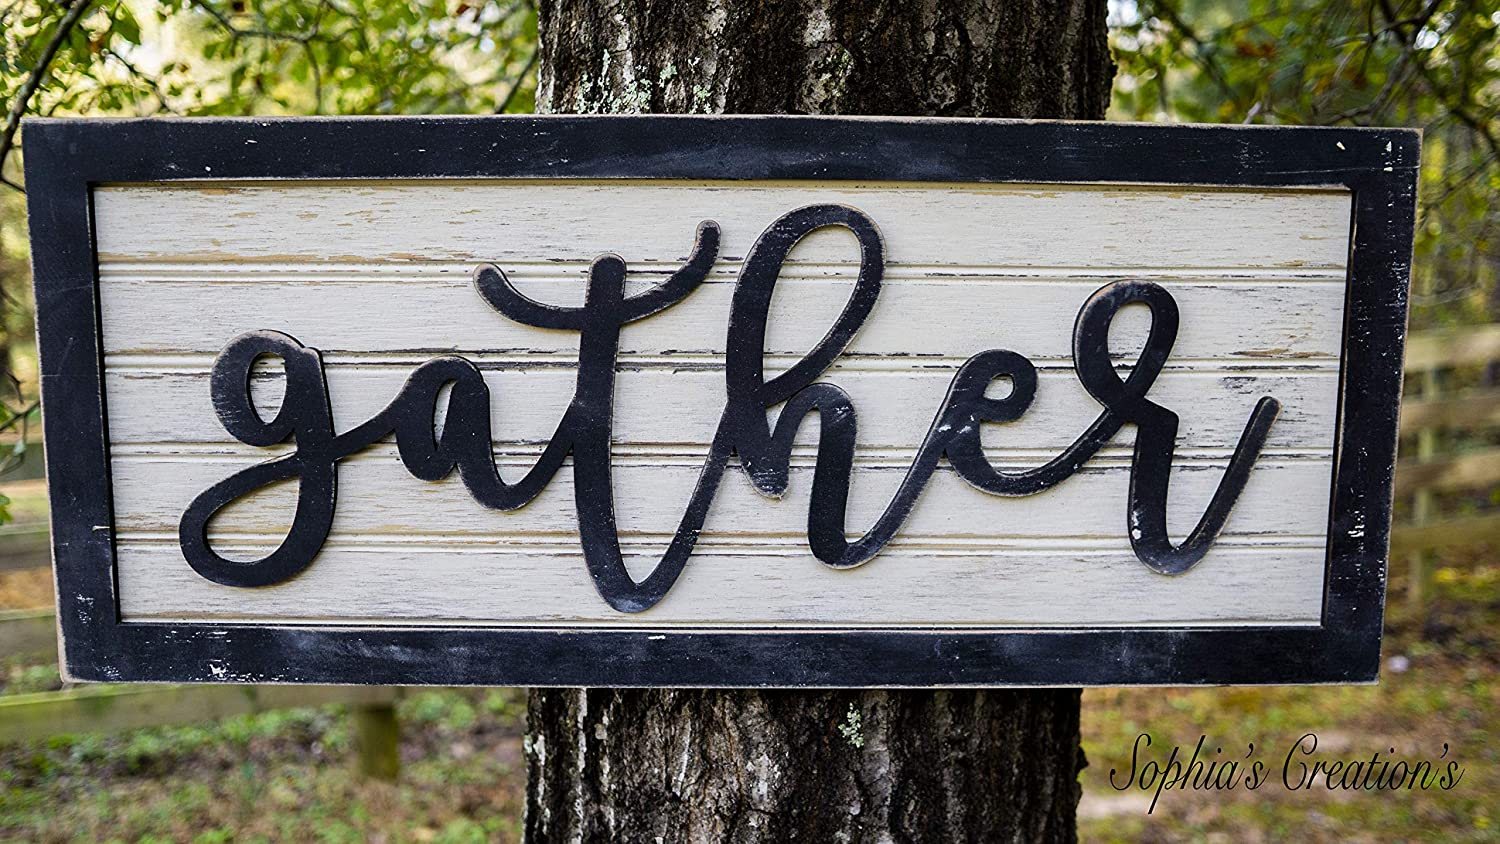 Amazon Com Sophia S Creations Custom Gather Wood Sign Home Decor Gather Hand Crafted Wood Sign House Warming Gift Ideas Wall Decor Gift Ideas Home Kitchen